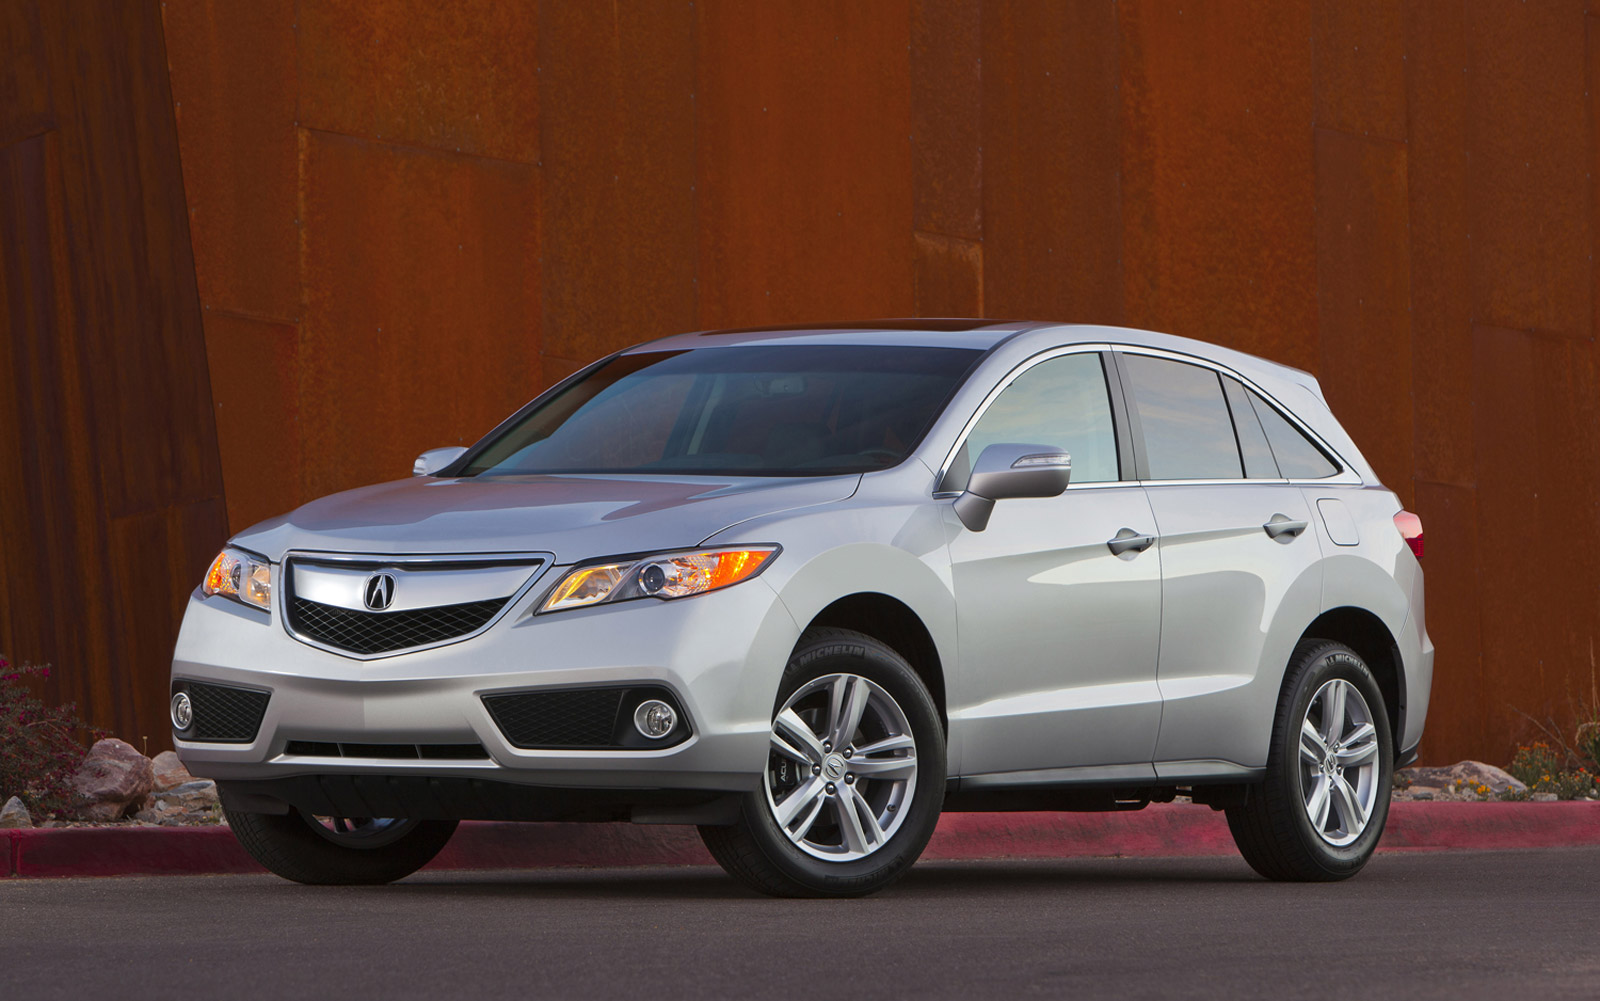 2014 Acura RDX Review, Ratings, Specs, Prices, and Photos - The Car Connection